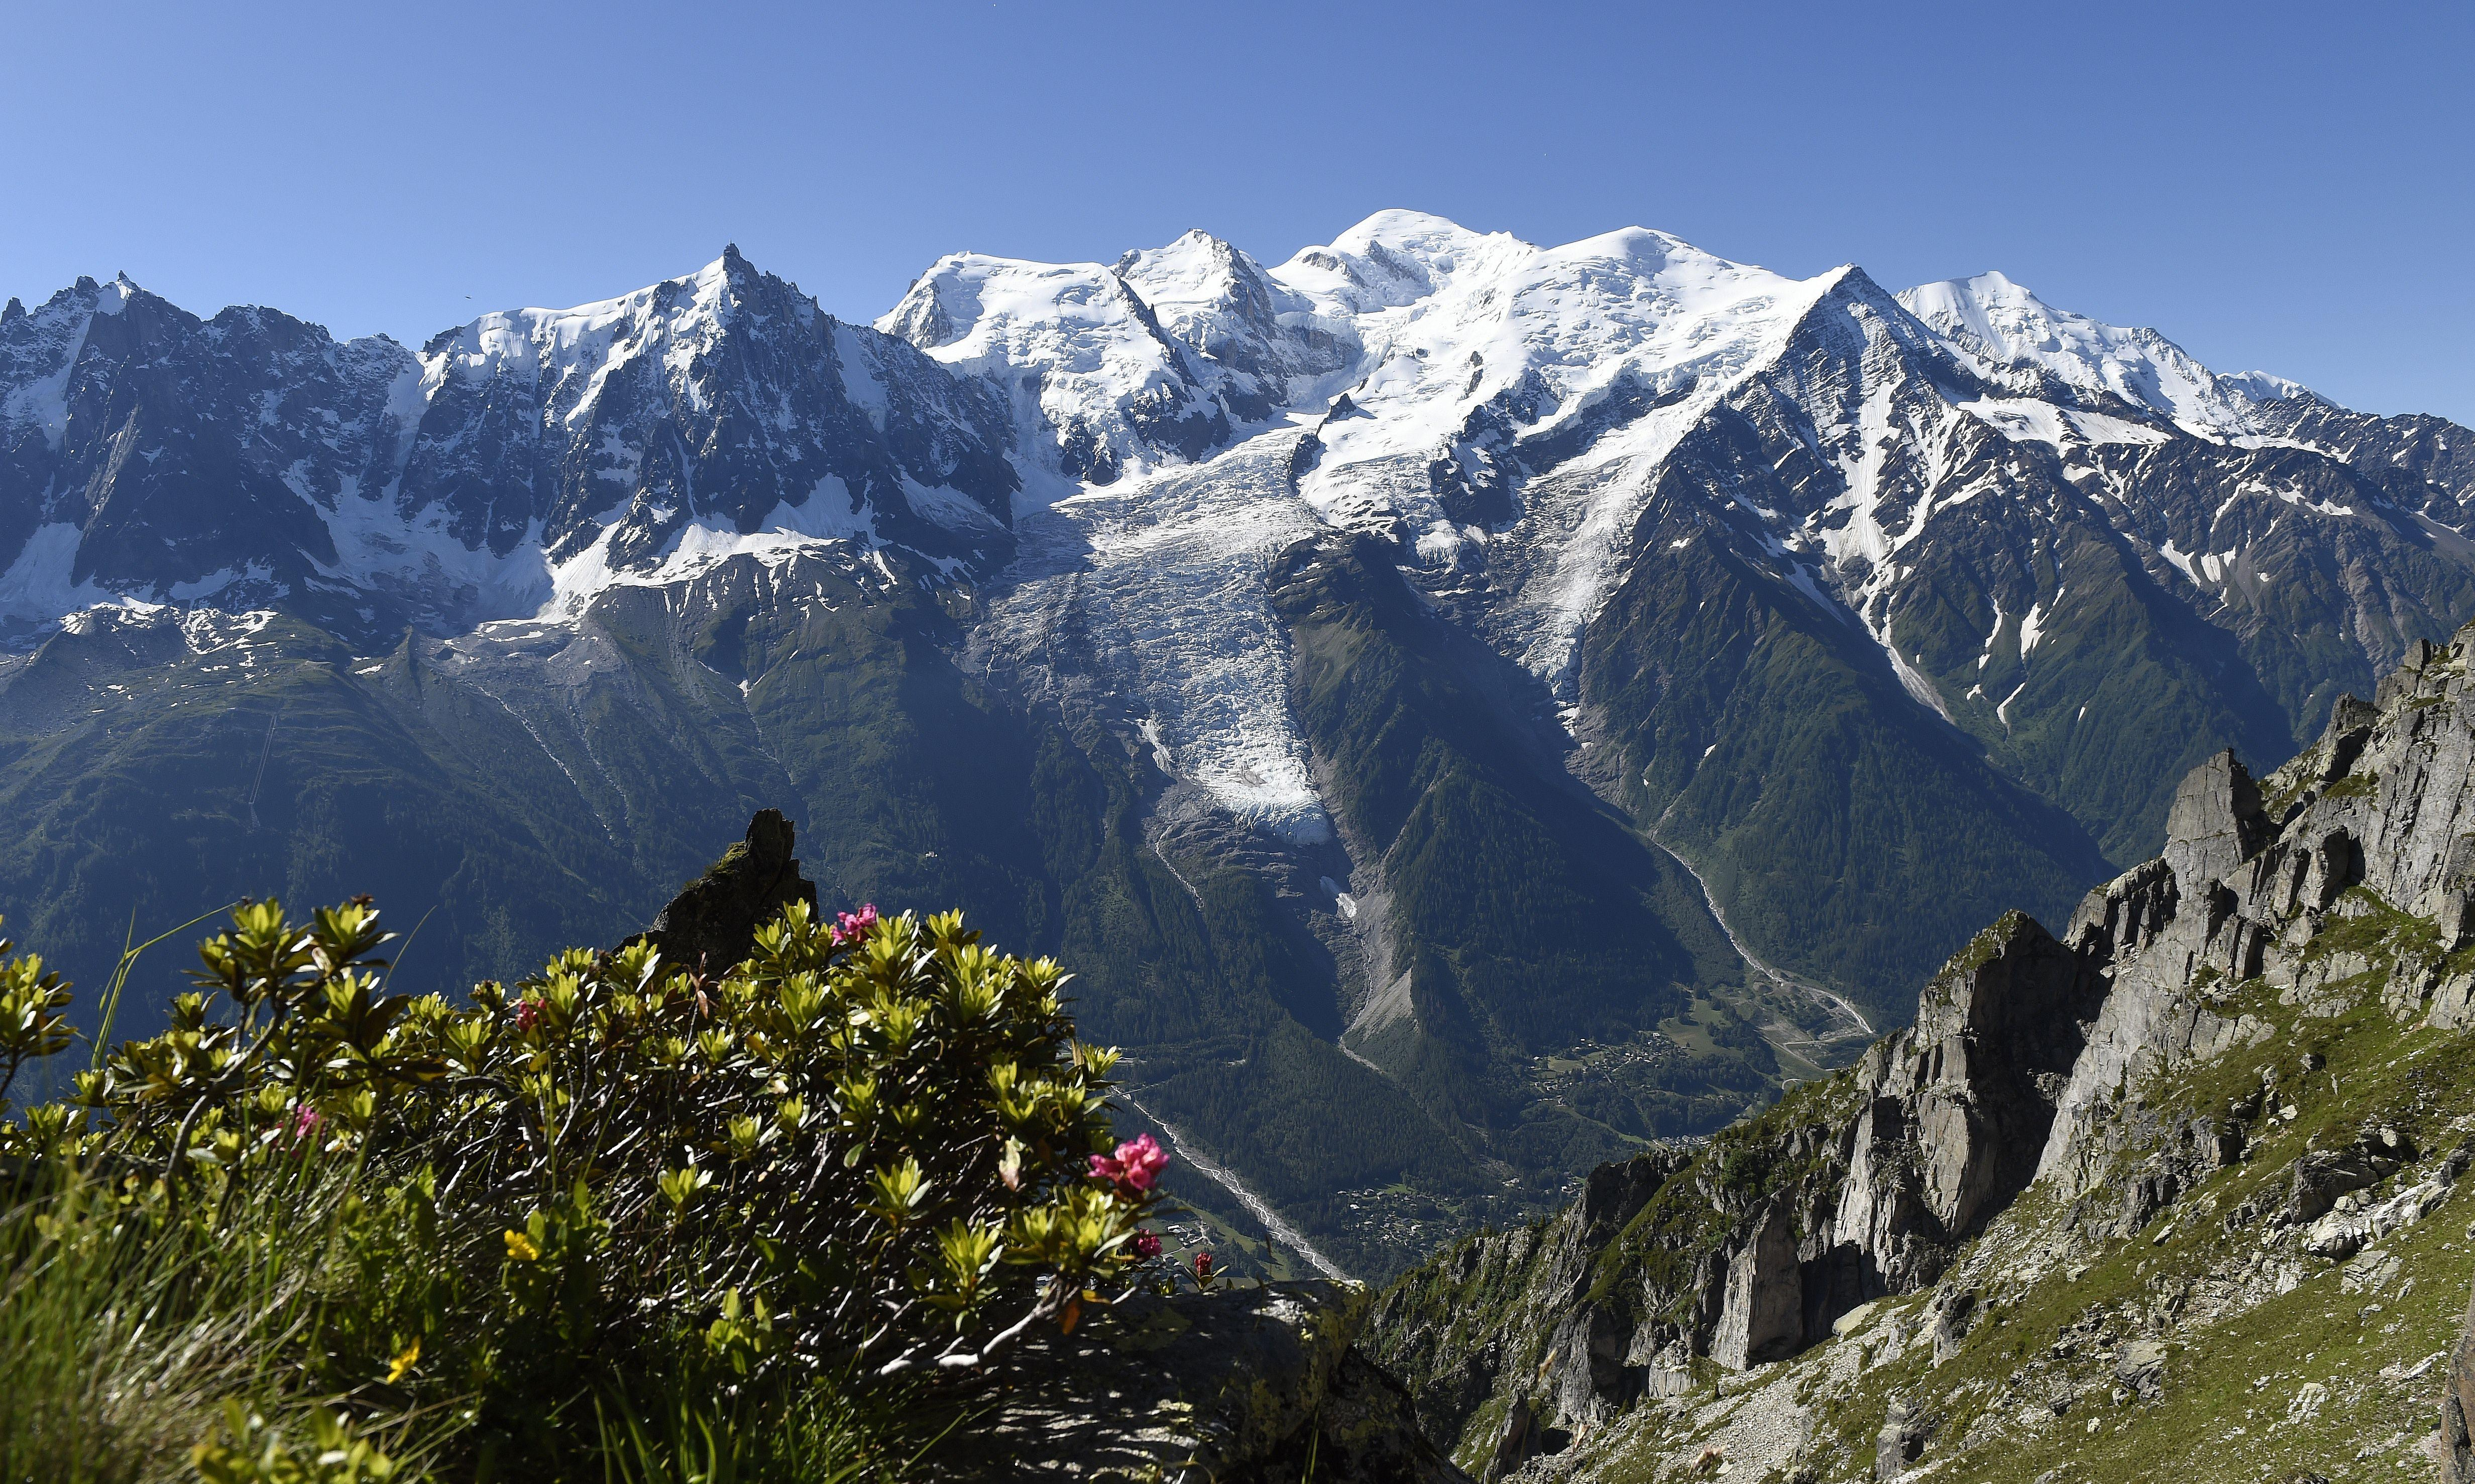 Climbers land plane near summit of Mont Blanc with police in pursuit